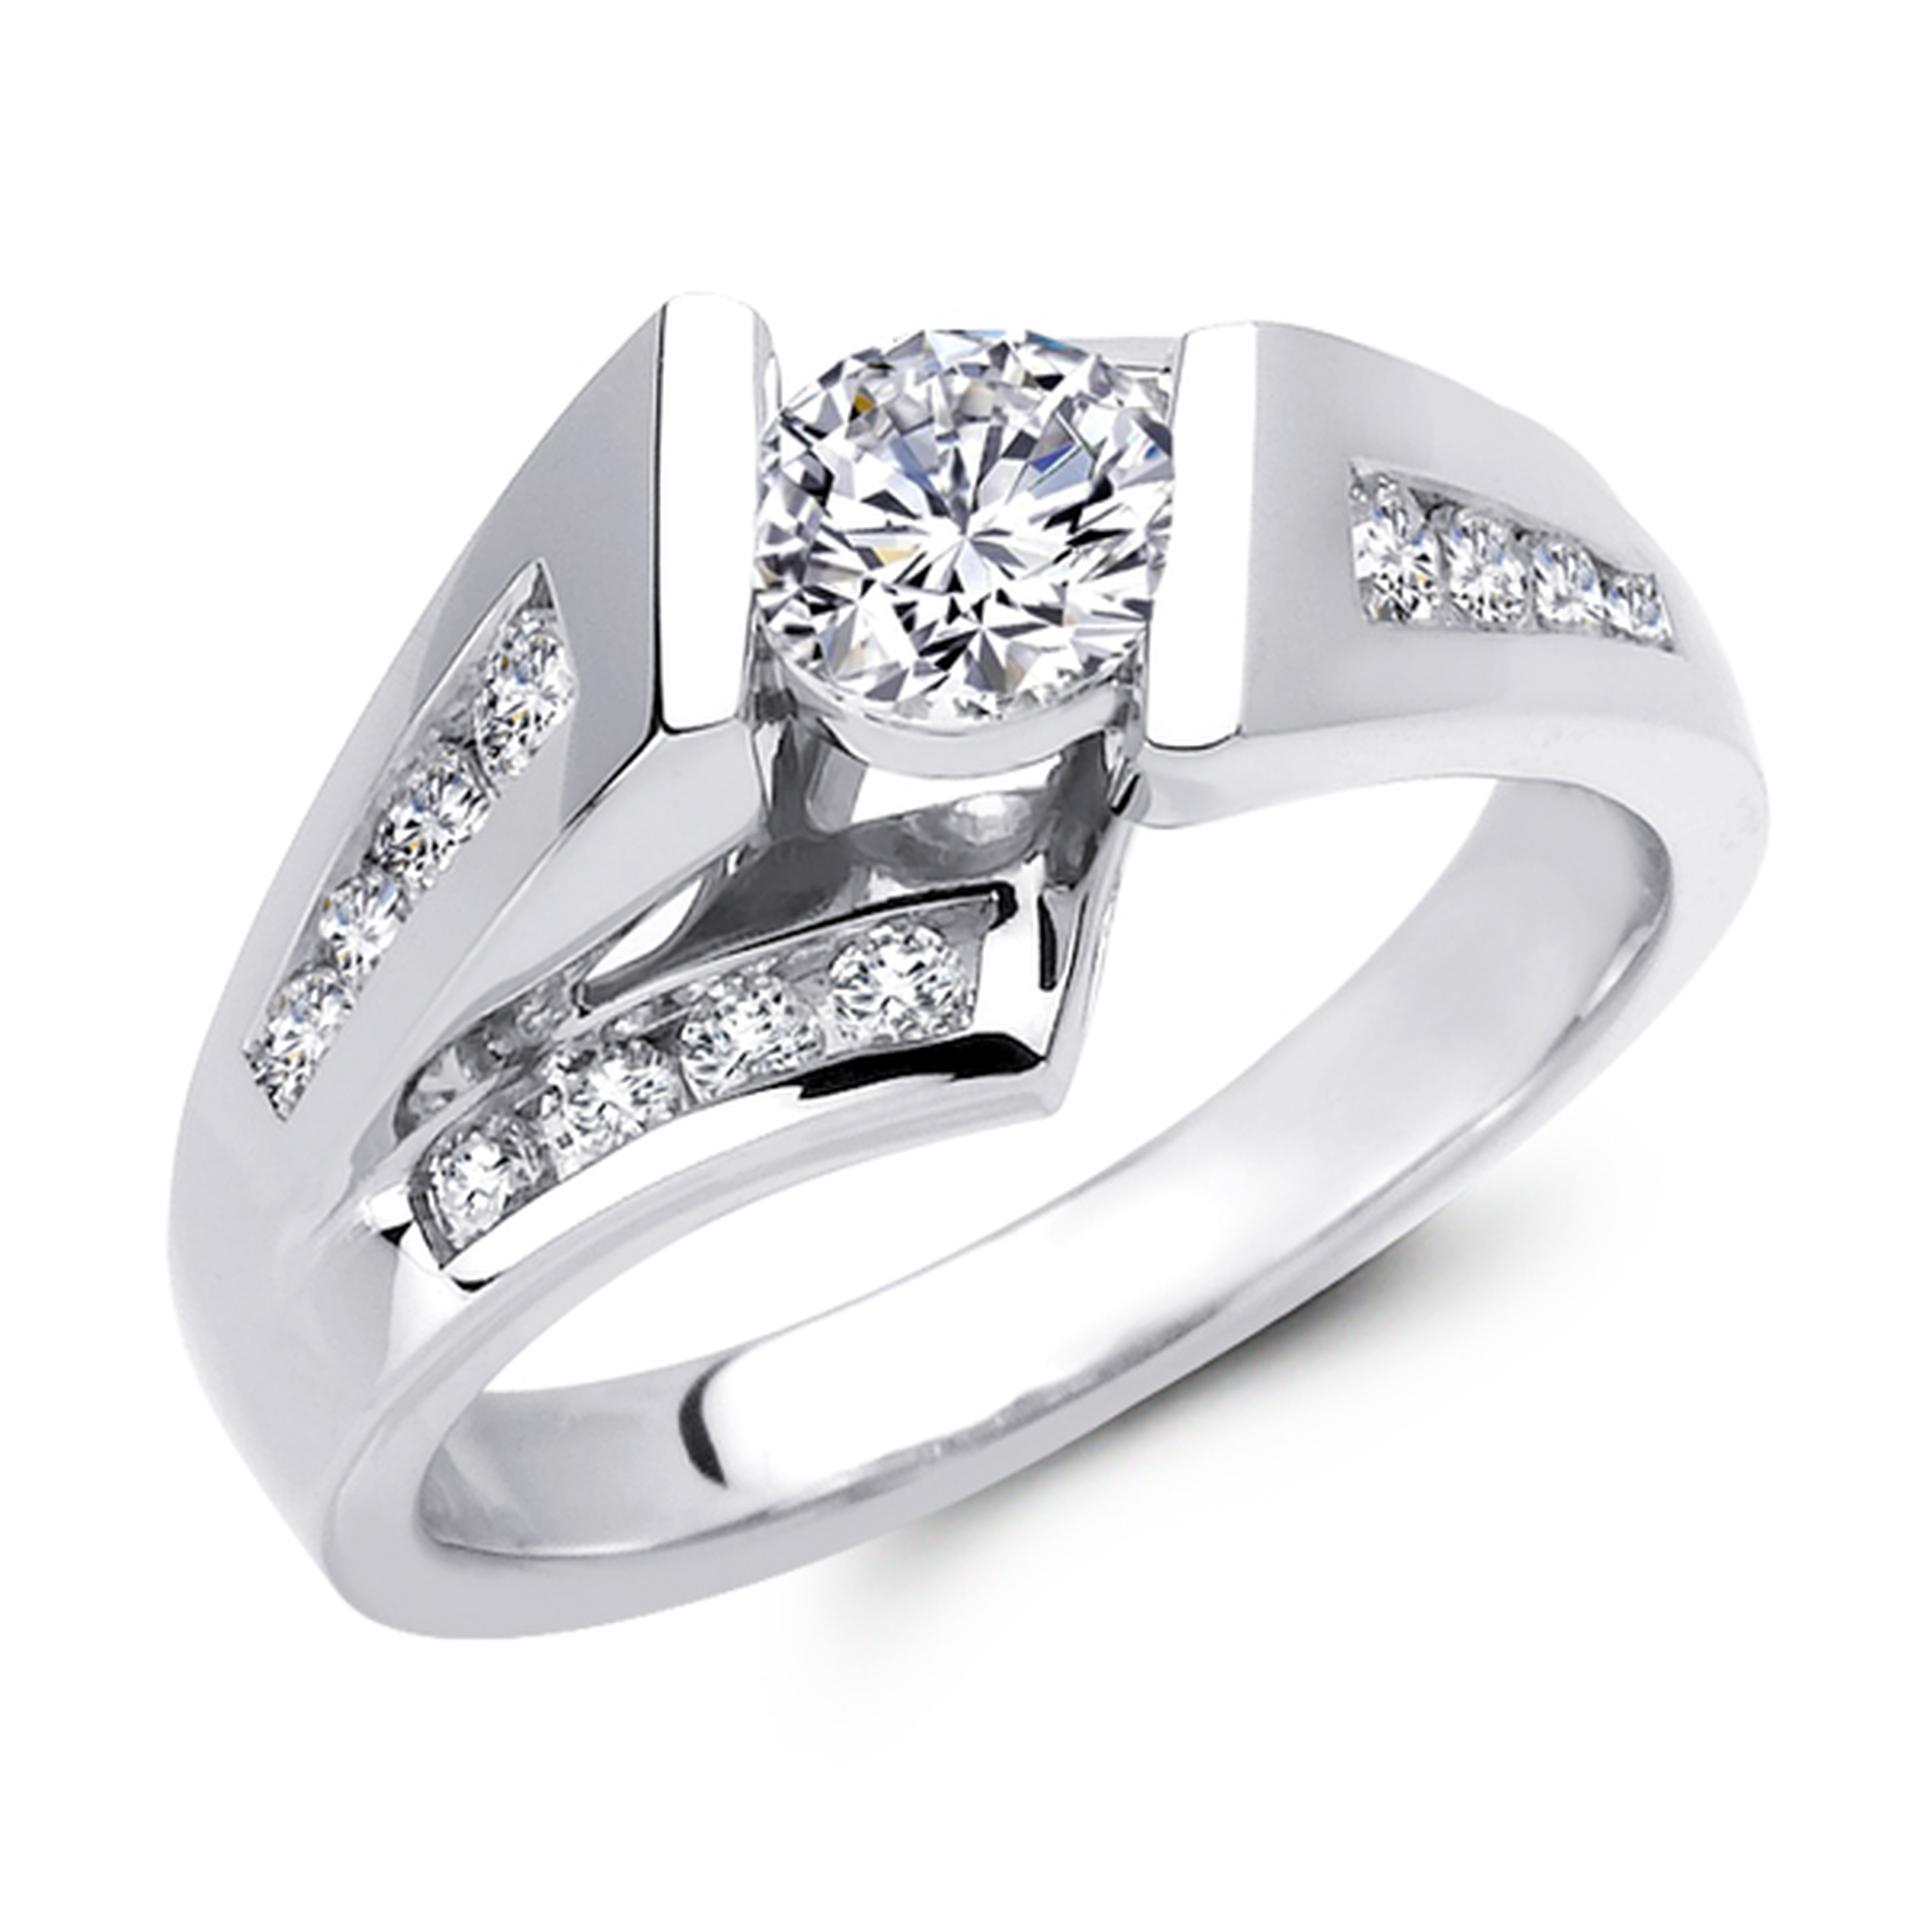 Fine Quality Diamond Jewelry